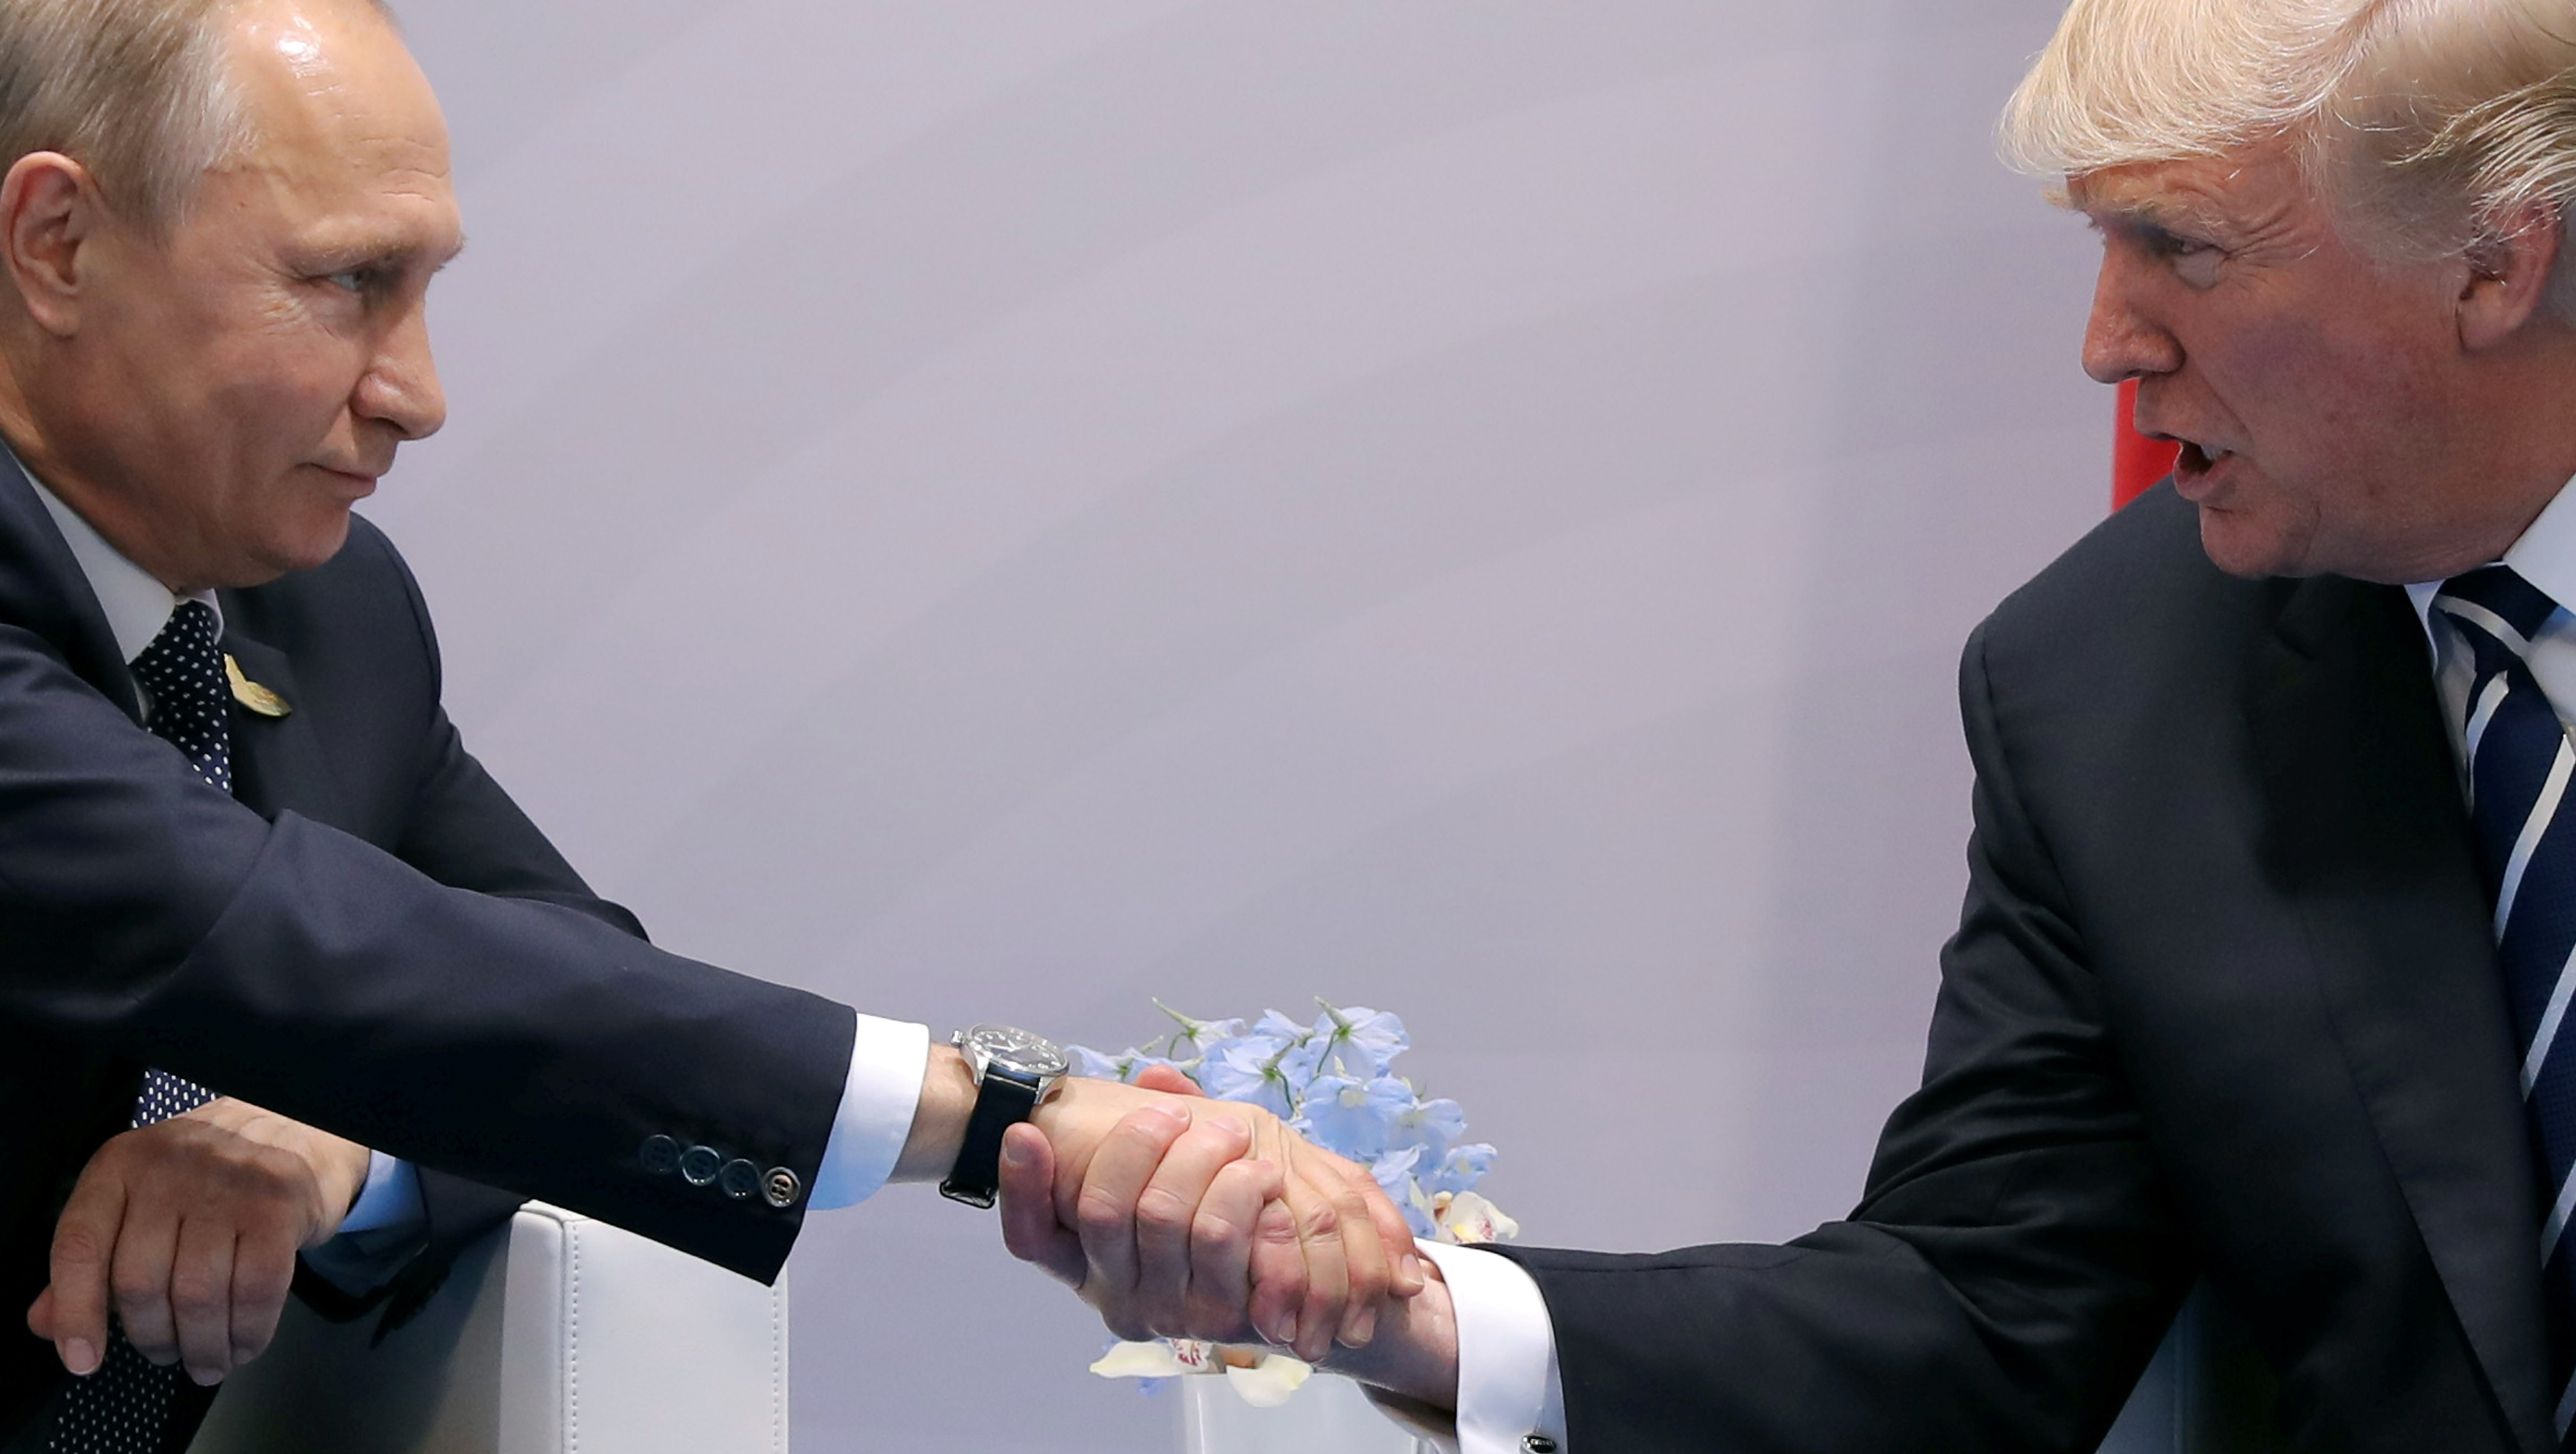 U.S. President Donald Trump shakes hands with Russian President Vladimir Putin during the their bilateral meeting at the G20 summit in Hamburg, Germany July 7, 2017. REUTERS/Carlos Barria     TPX IMAGES OF THE DAY - RTX3AIAJ